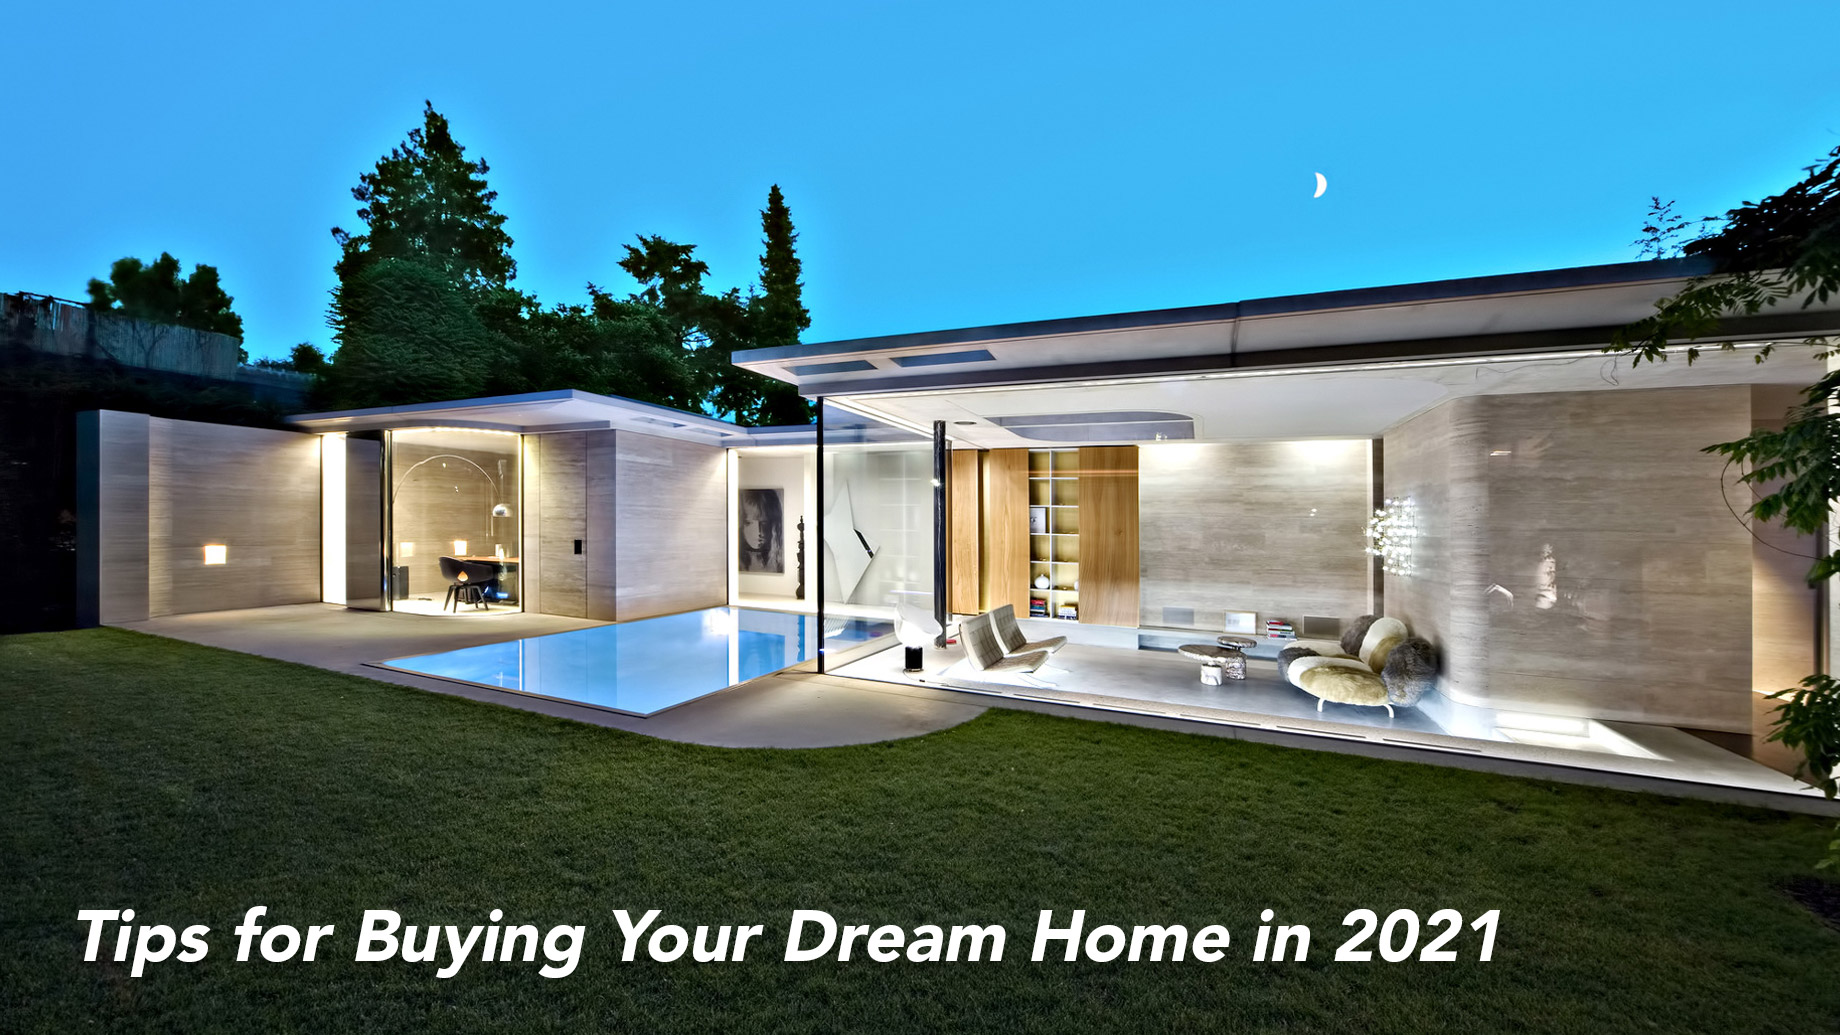 Tips for Buying Your Dream Home in 2021